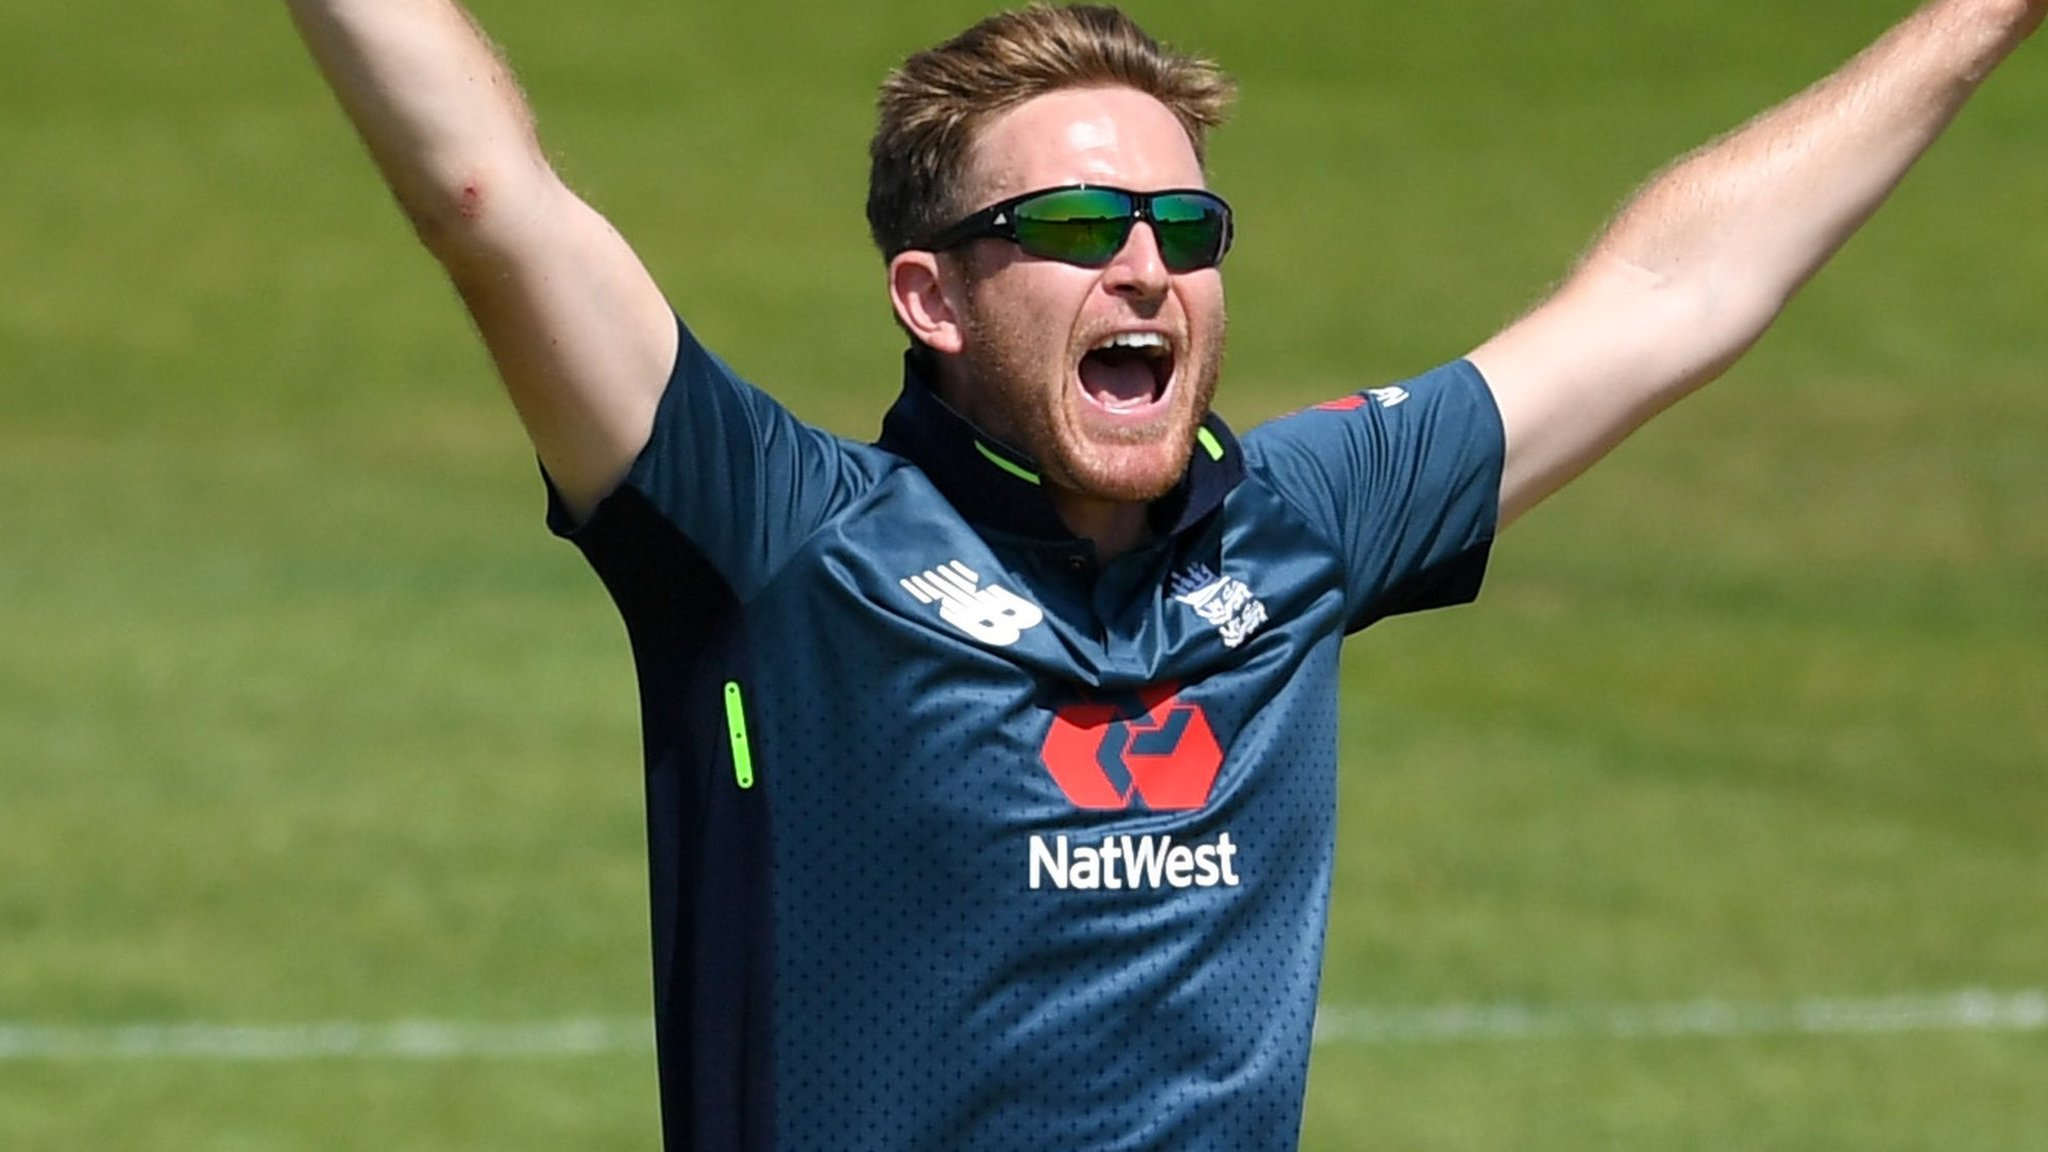 Cricket World Cup: Liam Dawson still in contention for England squad - Bayliss